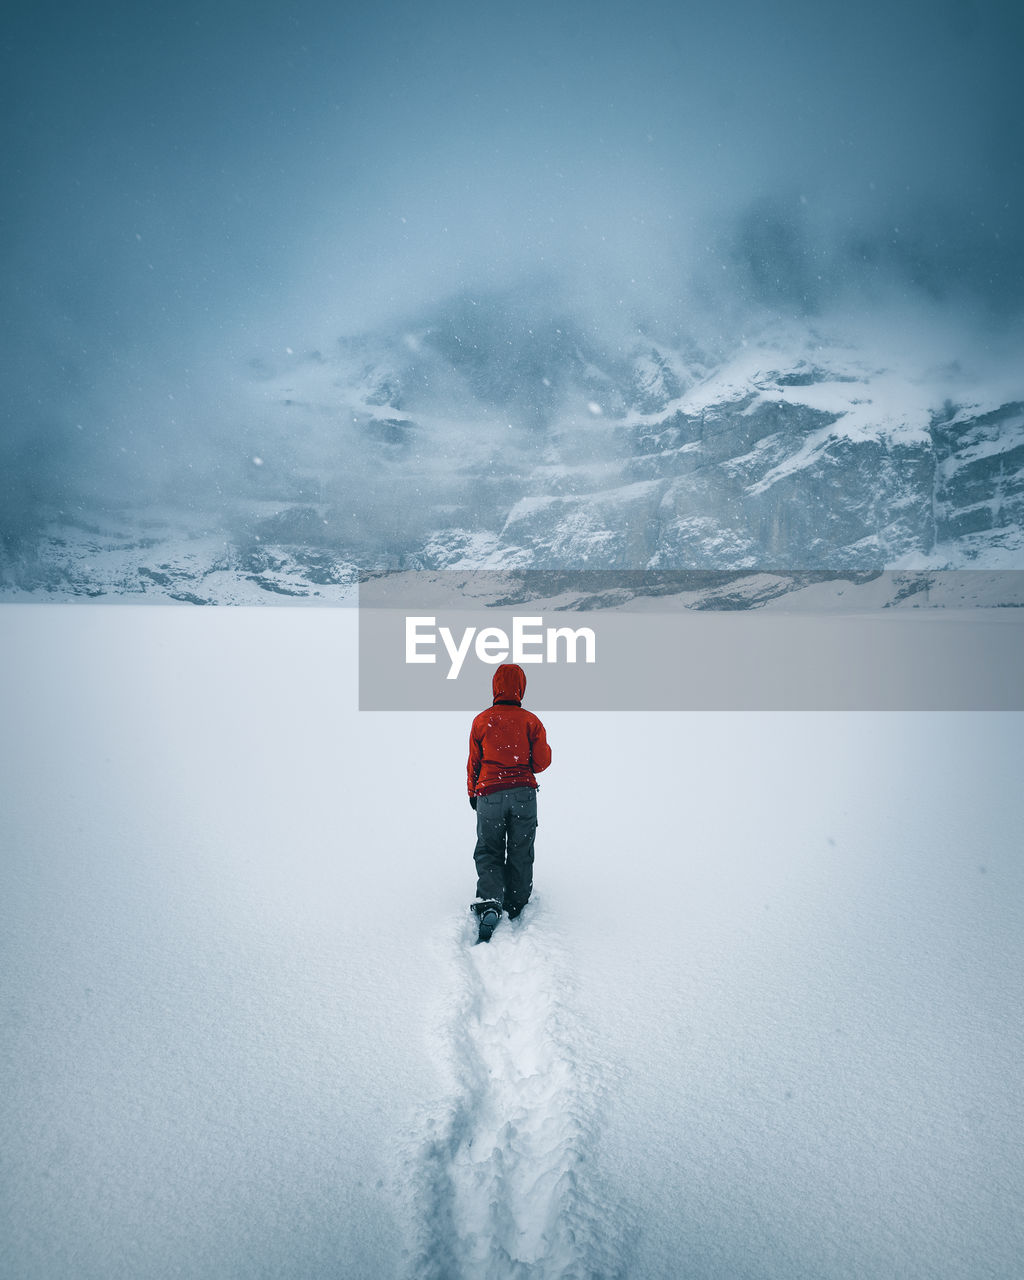 Woman walking on snow covered mountain against sky